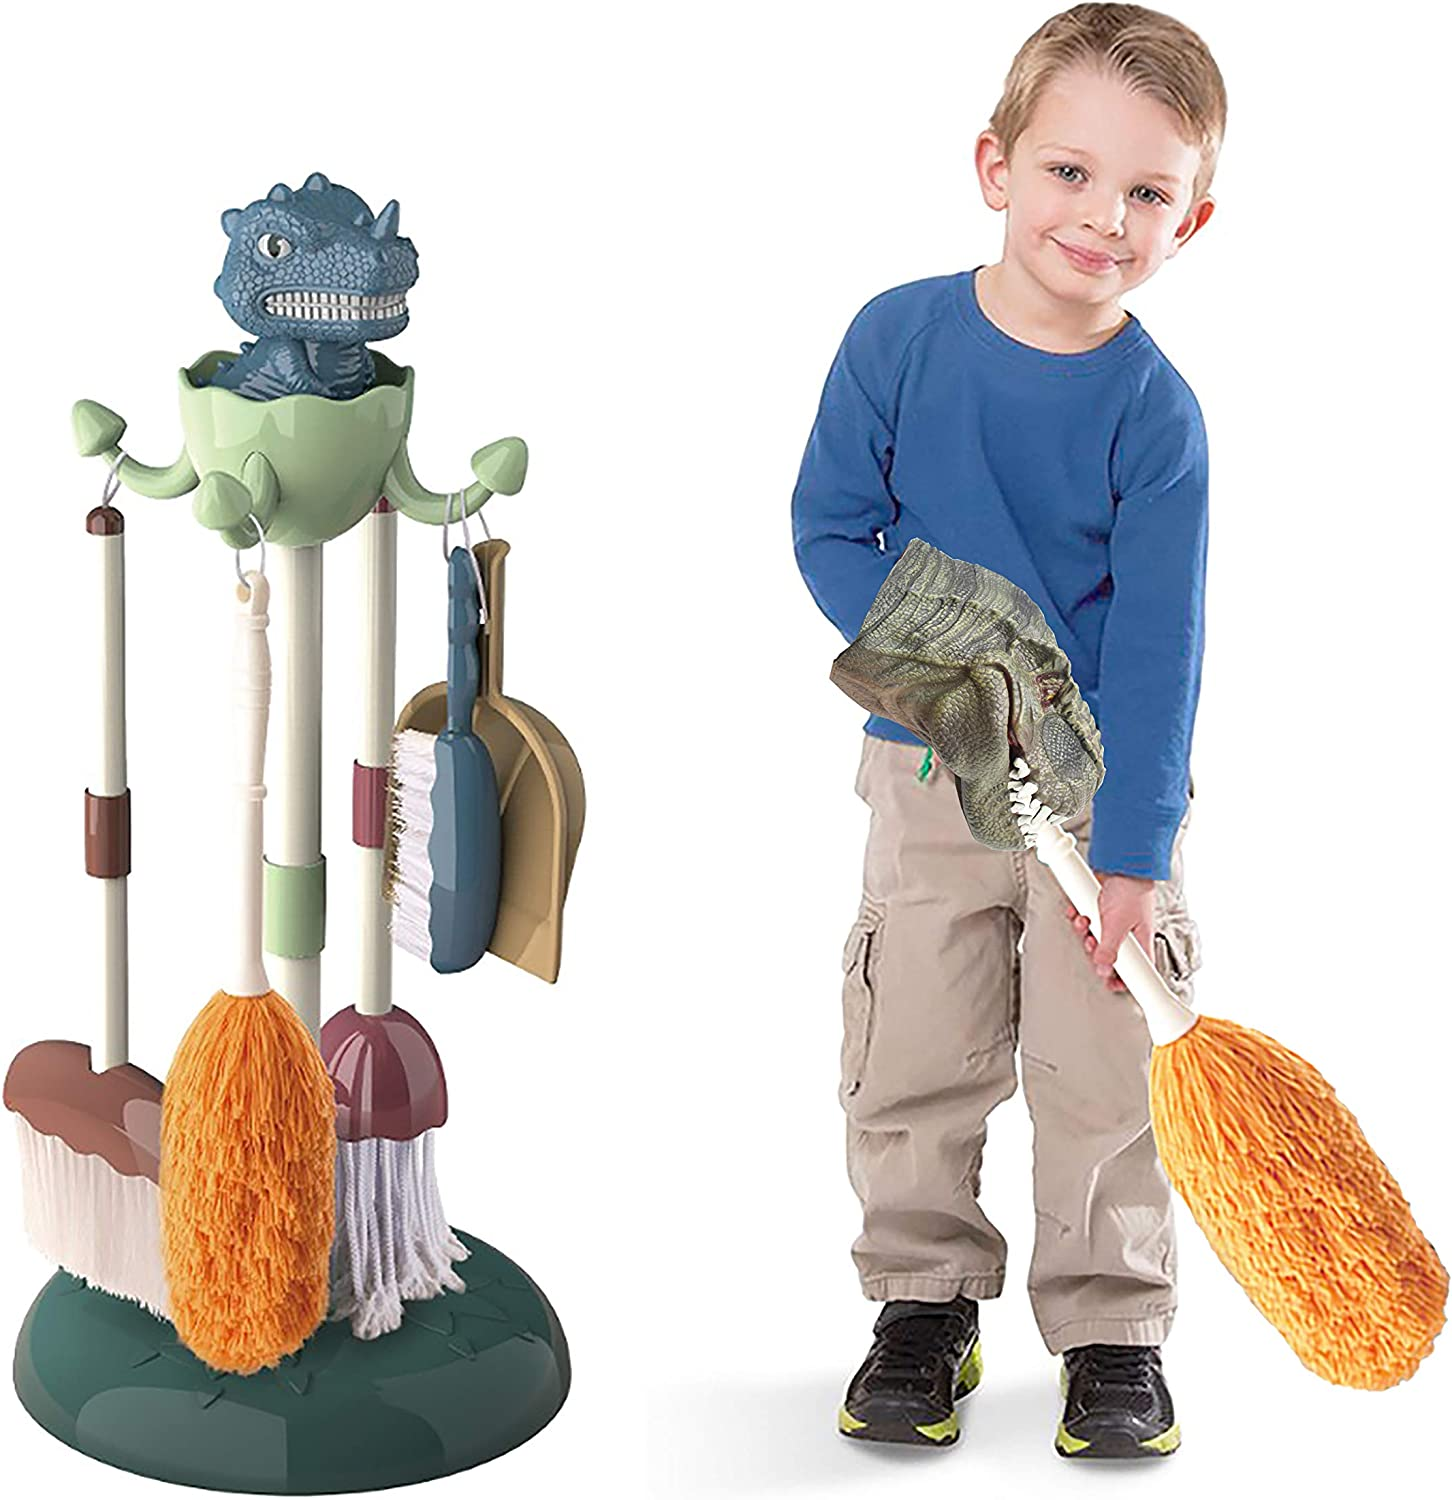 Brush Duster T-Rex Dinosaur Hand Puppet and Housekeeping Toy Complete Set for Toddlers and Pre-School Kids Dustpan and Dinosaur Stand CONII Kids House Cleaning Kit with Mop Broom